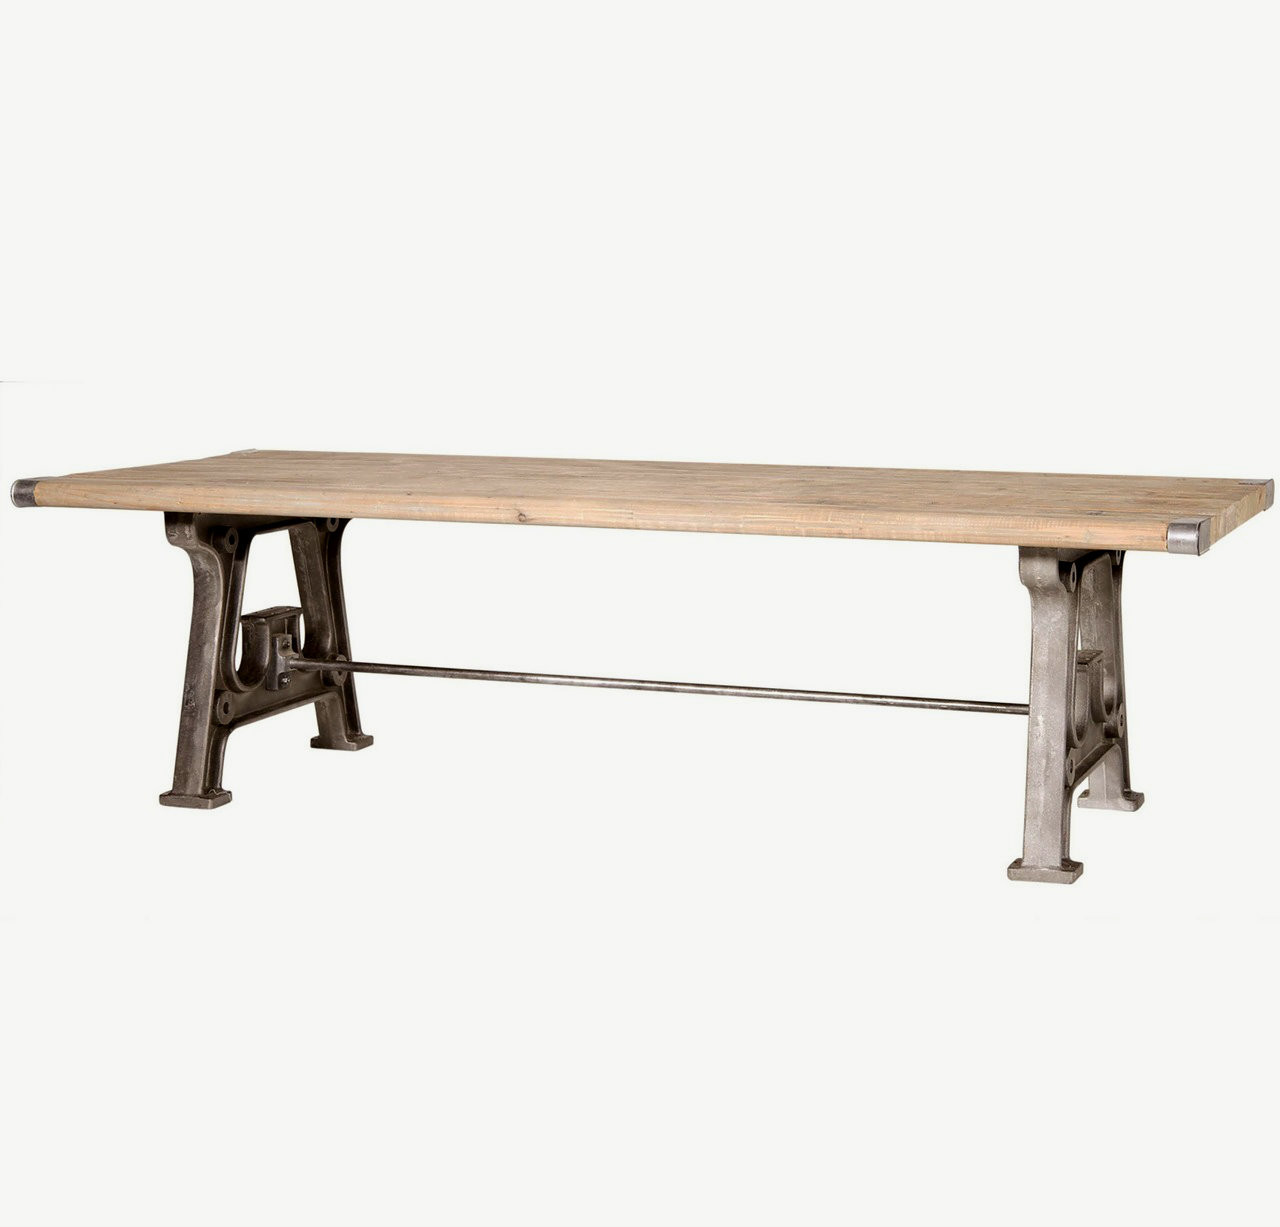 Industrial Dining Room Table industrial dining room tables ~ usrmanual